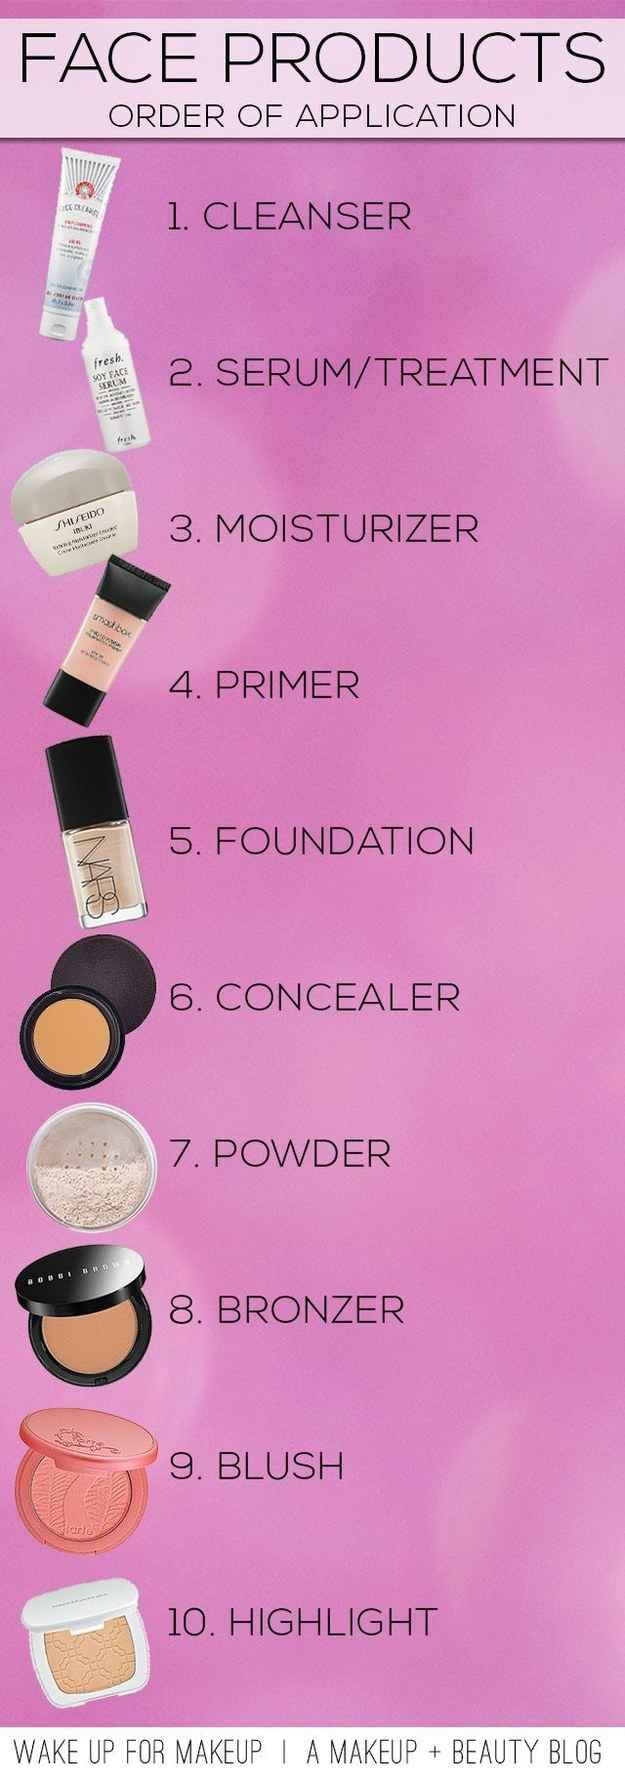 Having a ton of products means you may be unsure about when to use each one.: